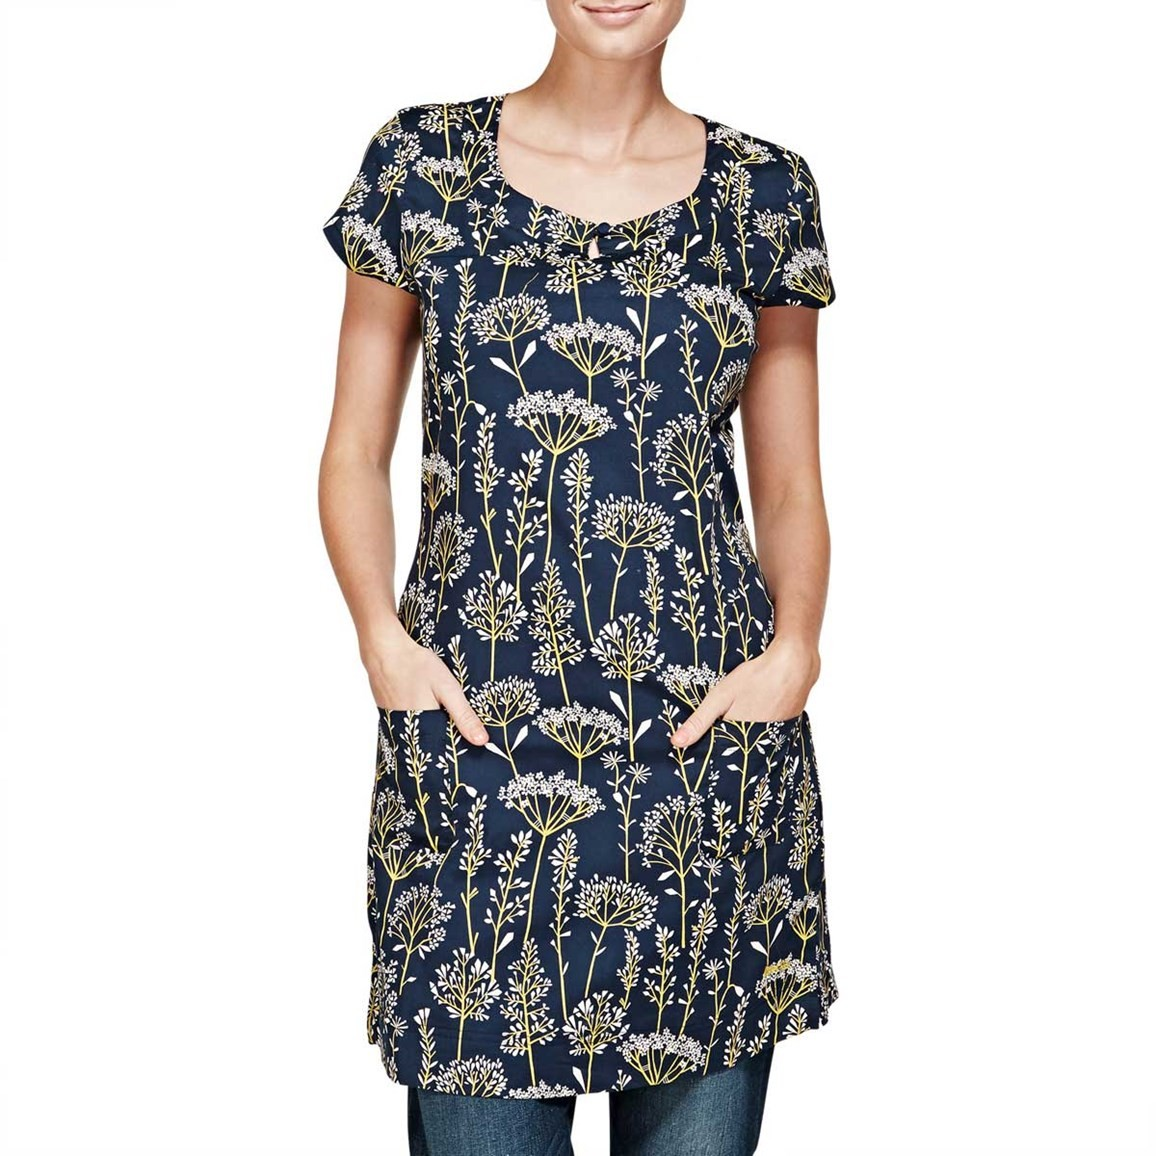 Image of Alana Short Sleeve Printed Stretch Tunic Top Dark Navy